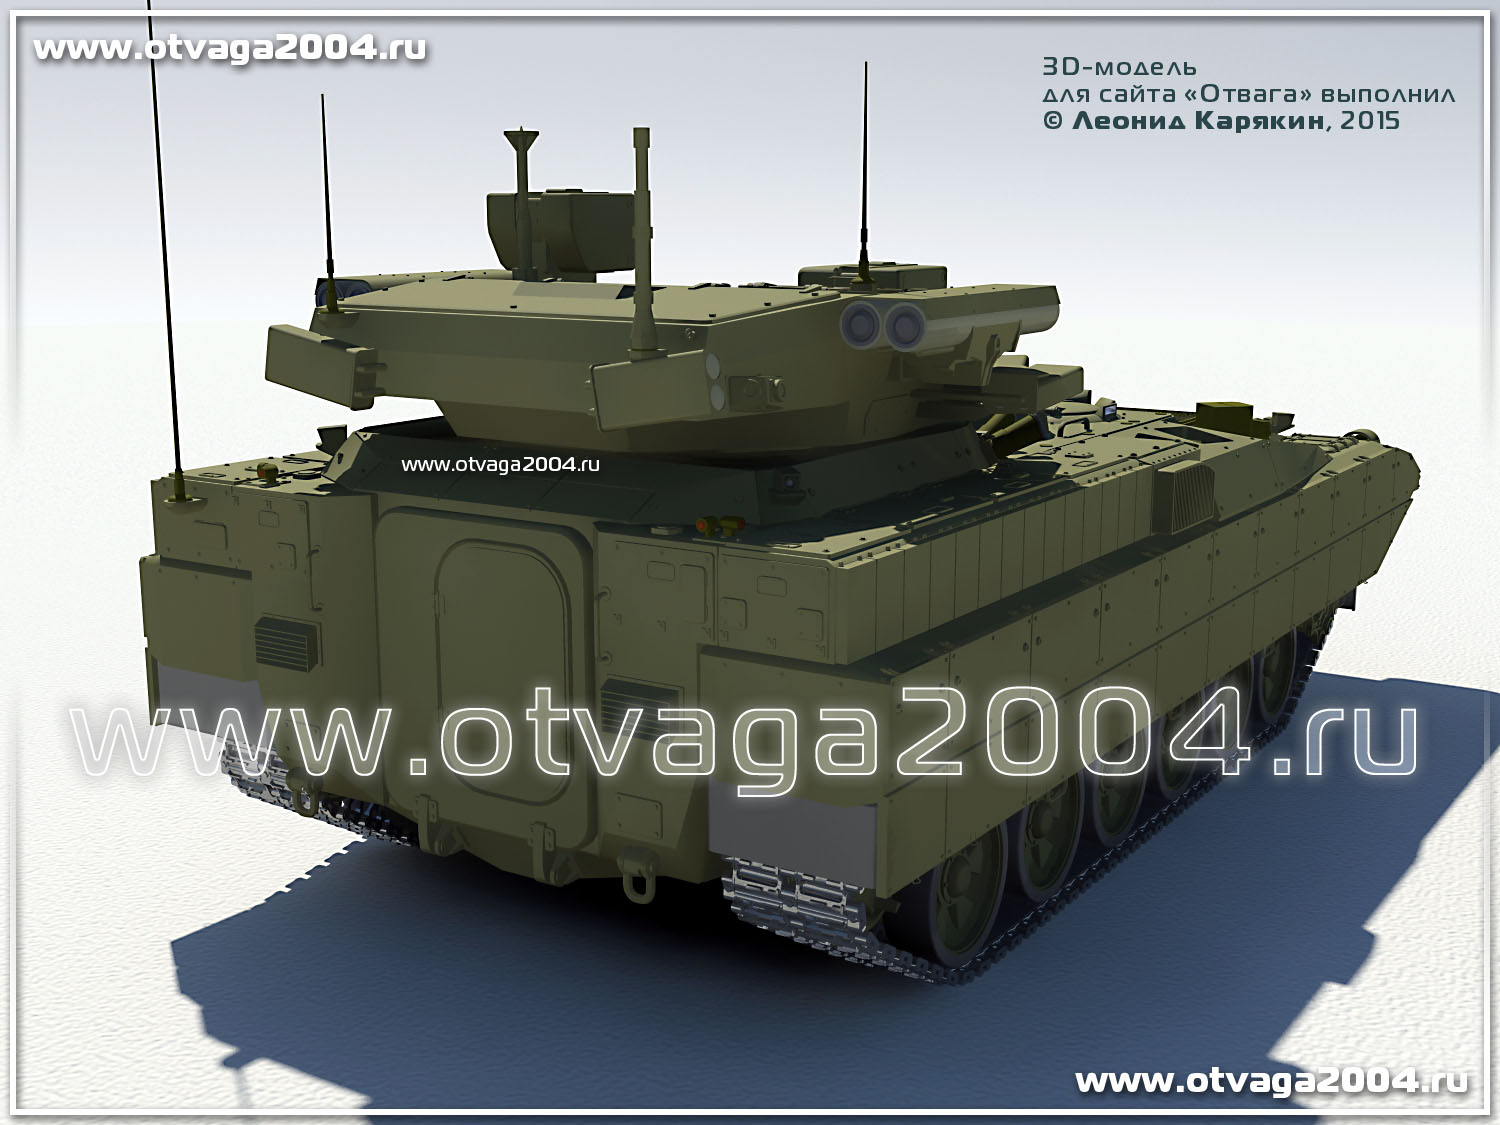 [Official] Armata Discussion thread #1 - Page 39 0_1129c9_2356a50e_orig